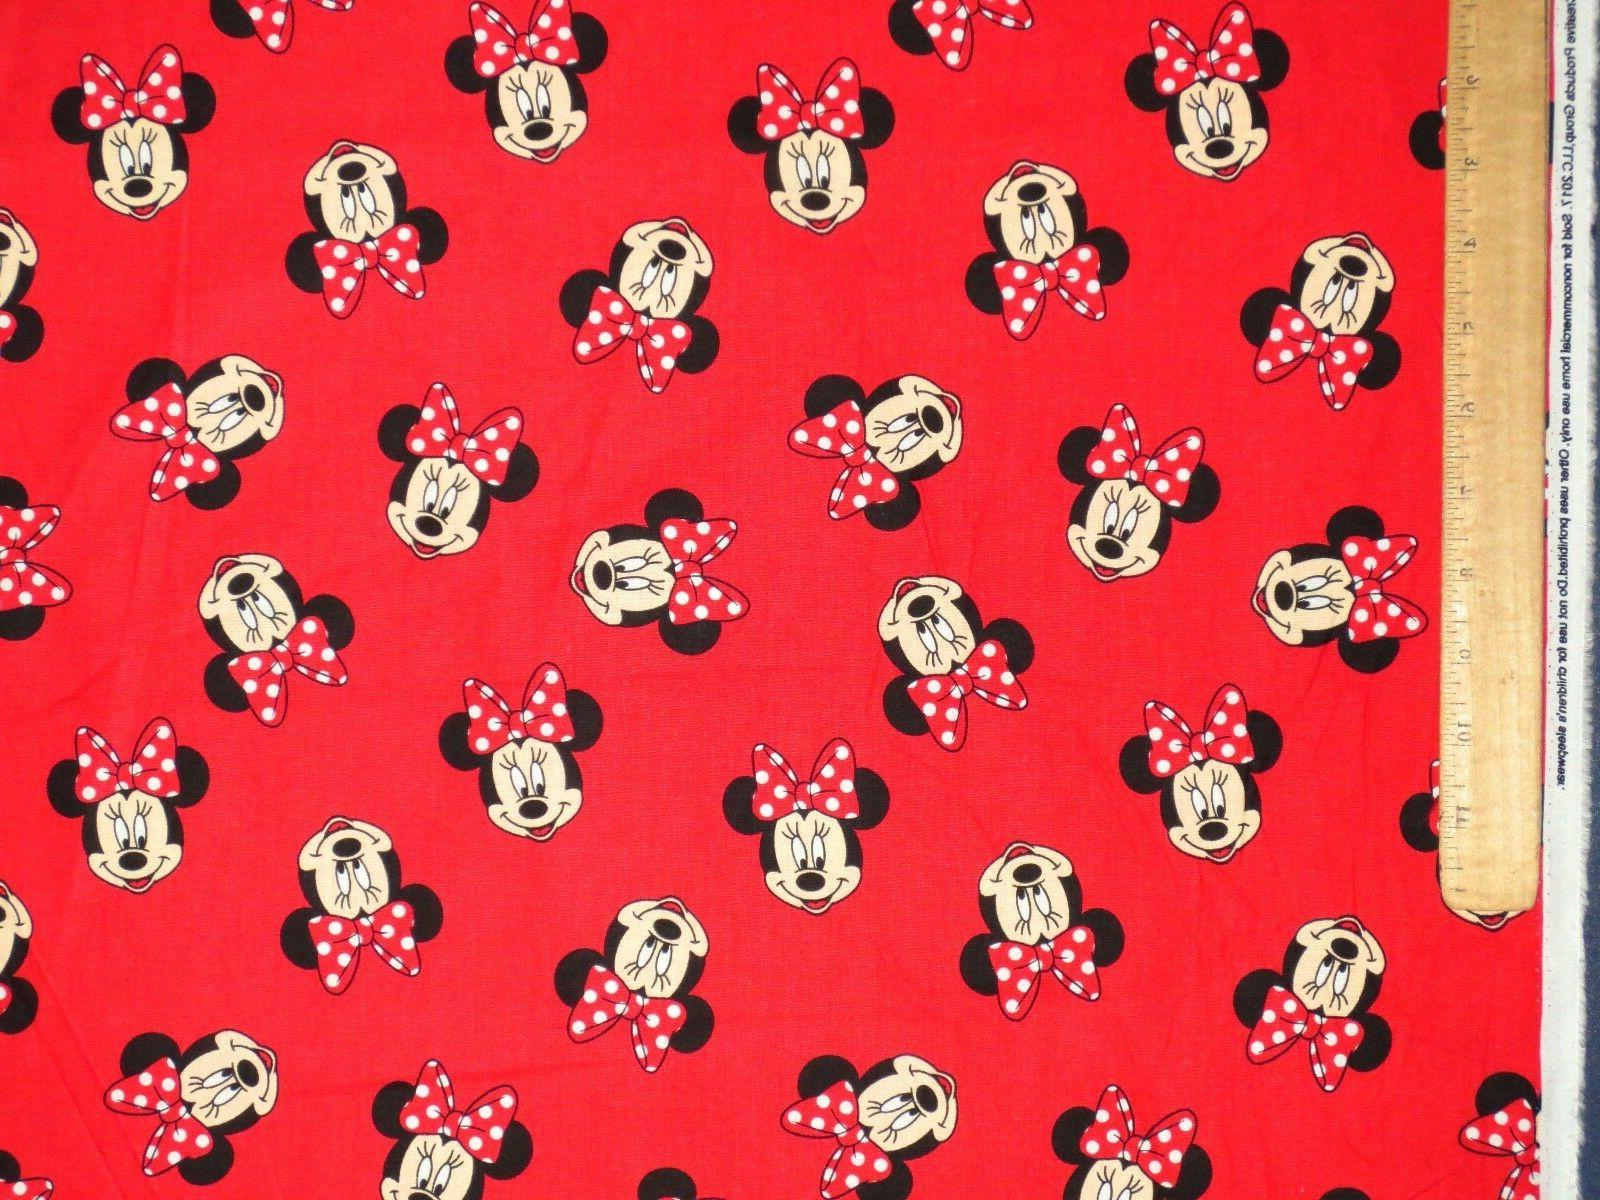 MOUSE CREATIVE QUILTING